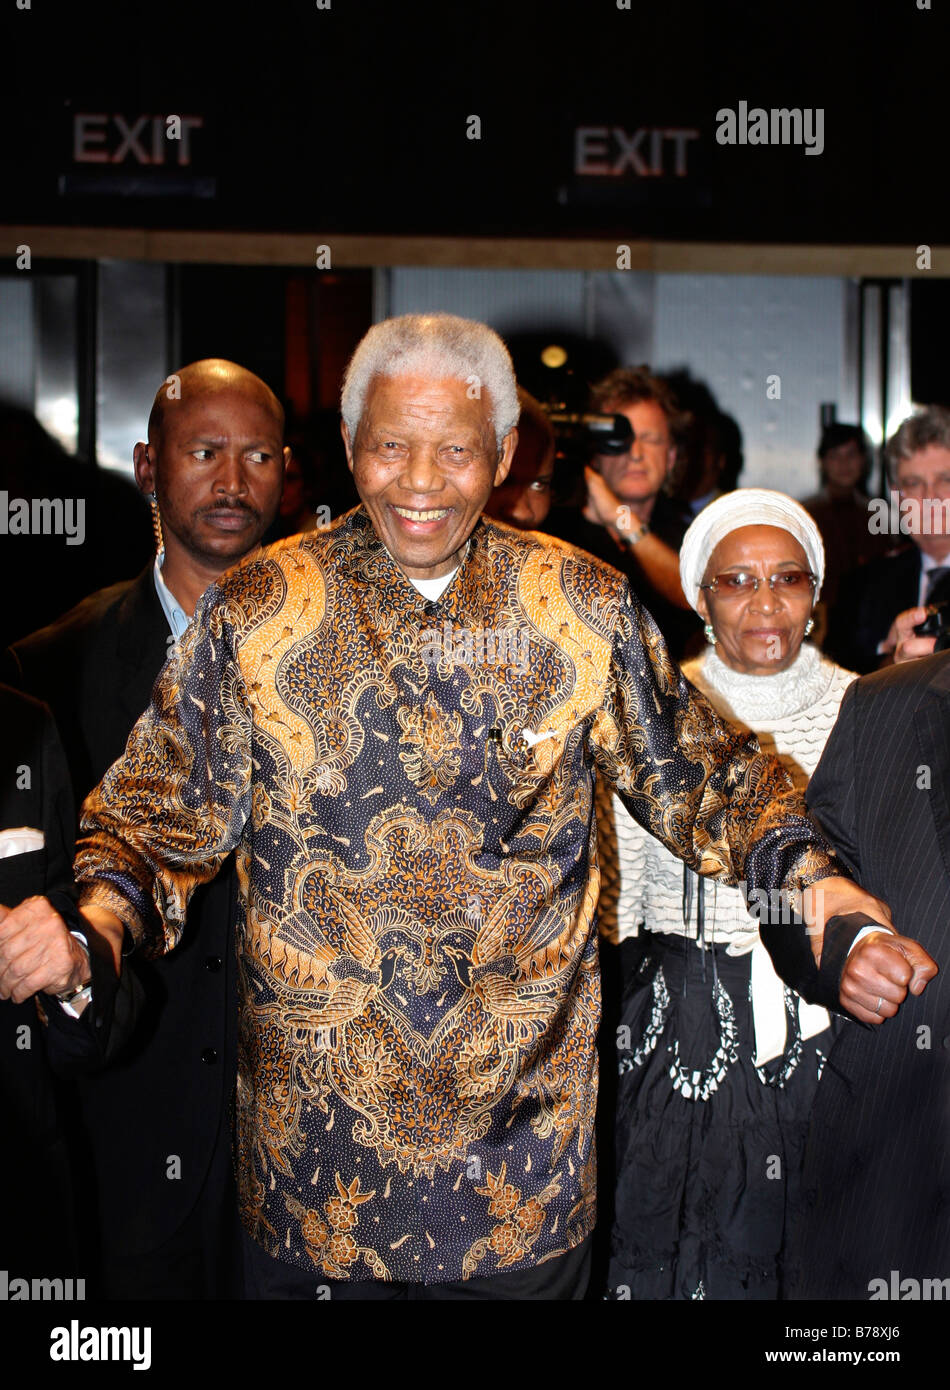 Smiling Nelson Mandela entering a room with his entourage at George Bizos fund raising function in Johannesburg - Stock Image